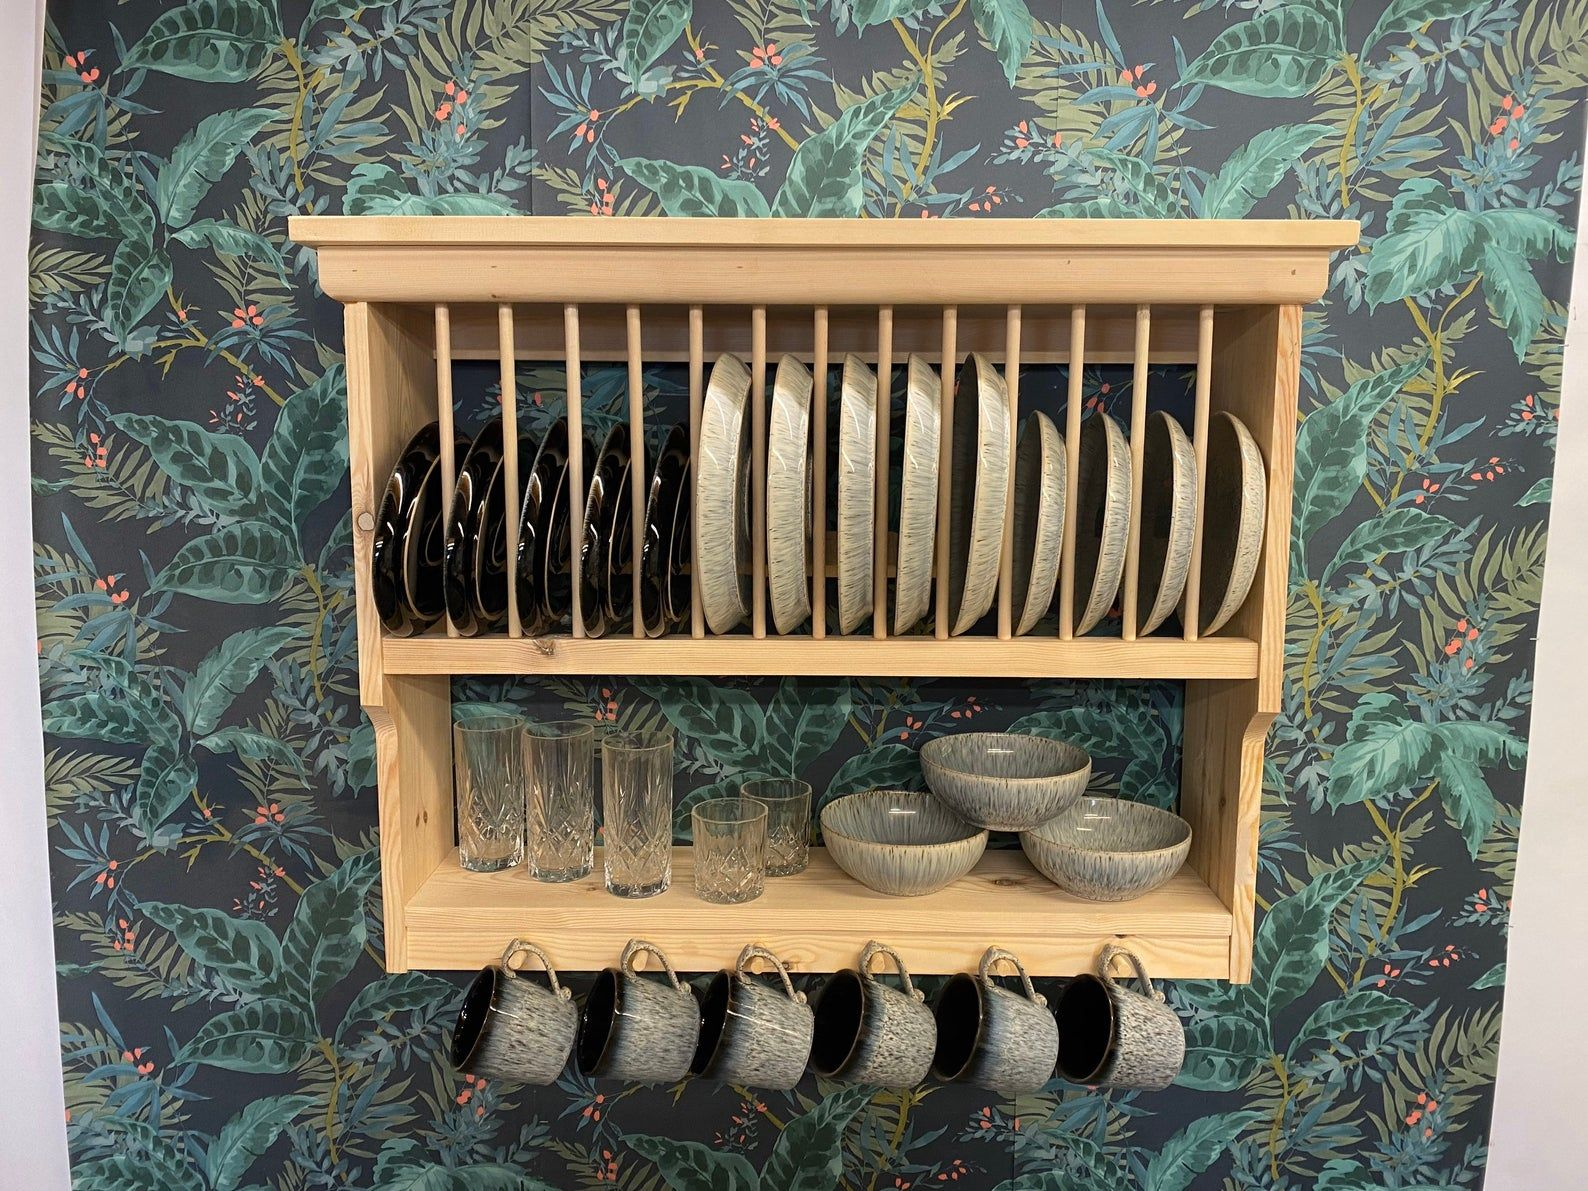 The Rochester natural pine handmade plate rack storage